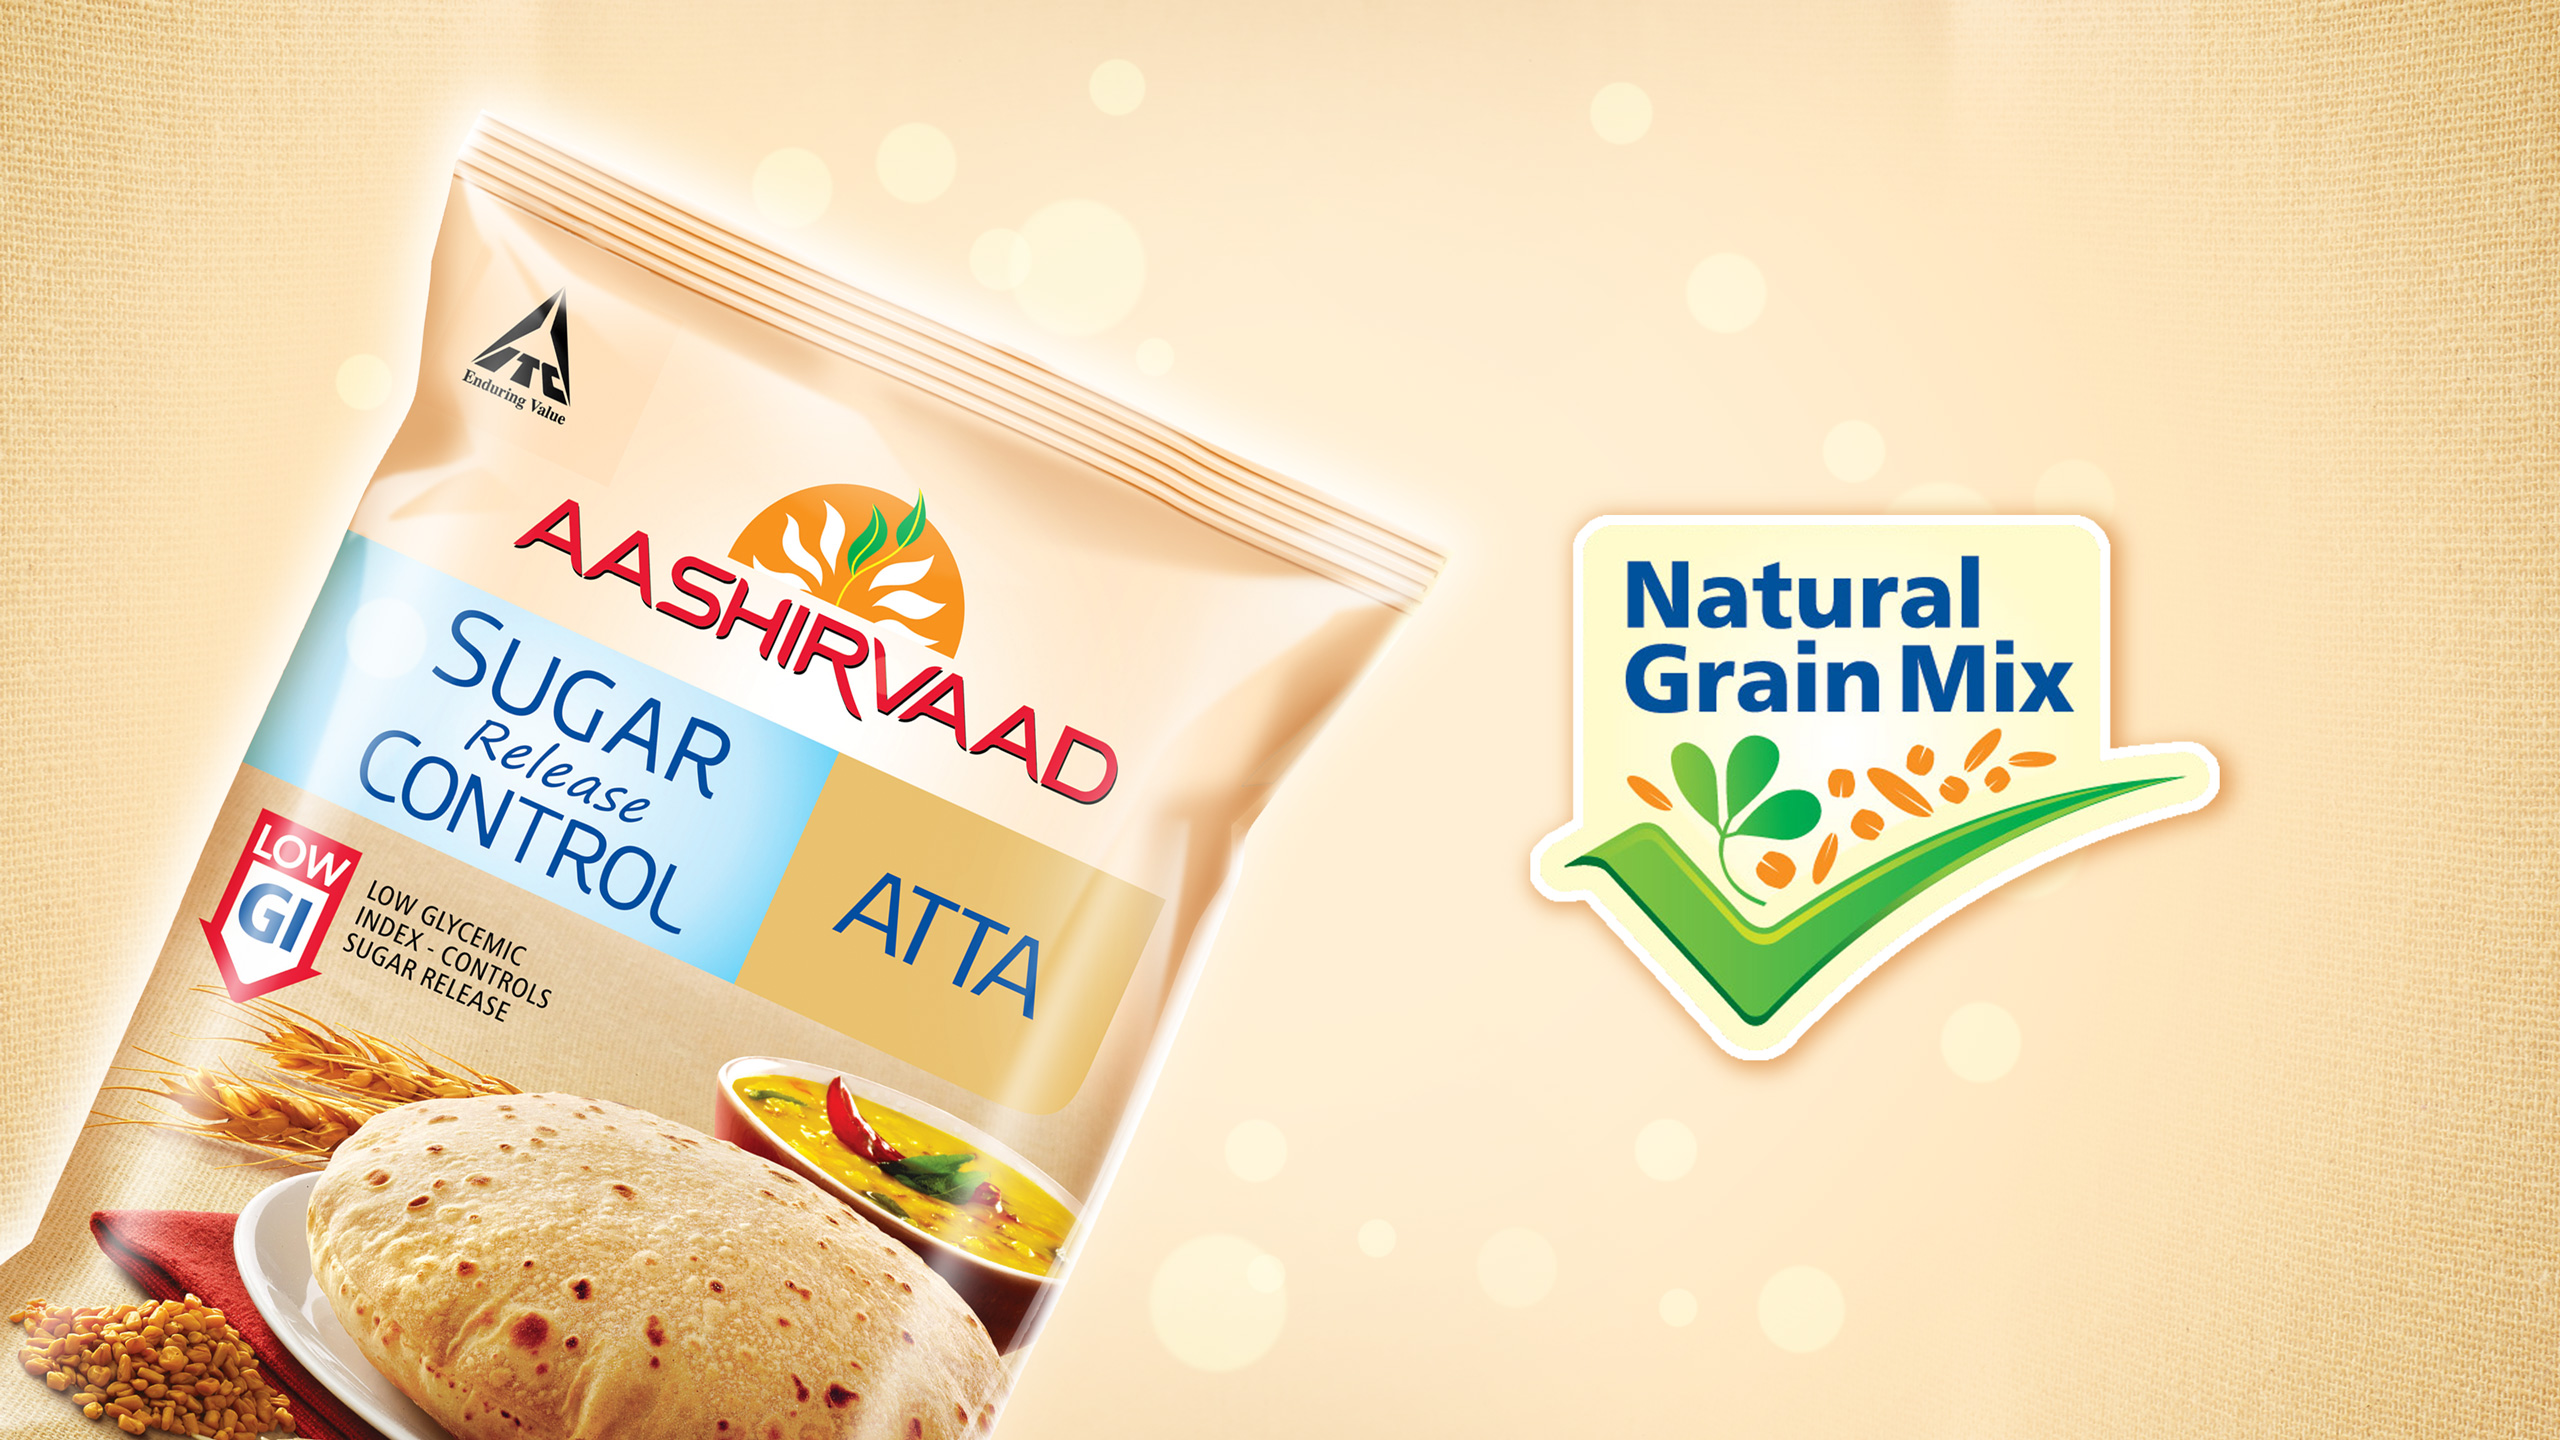 Branding and Identity design for ITC Aashirvaad sub brand Aashirvaad low GI atta